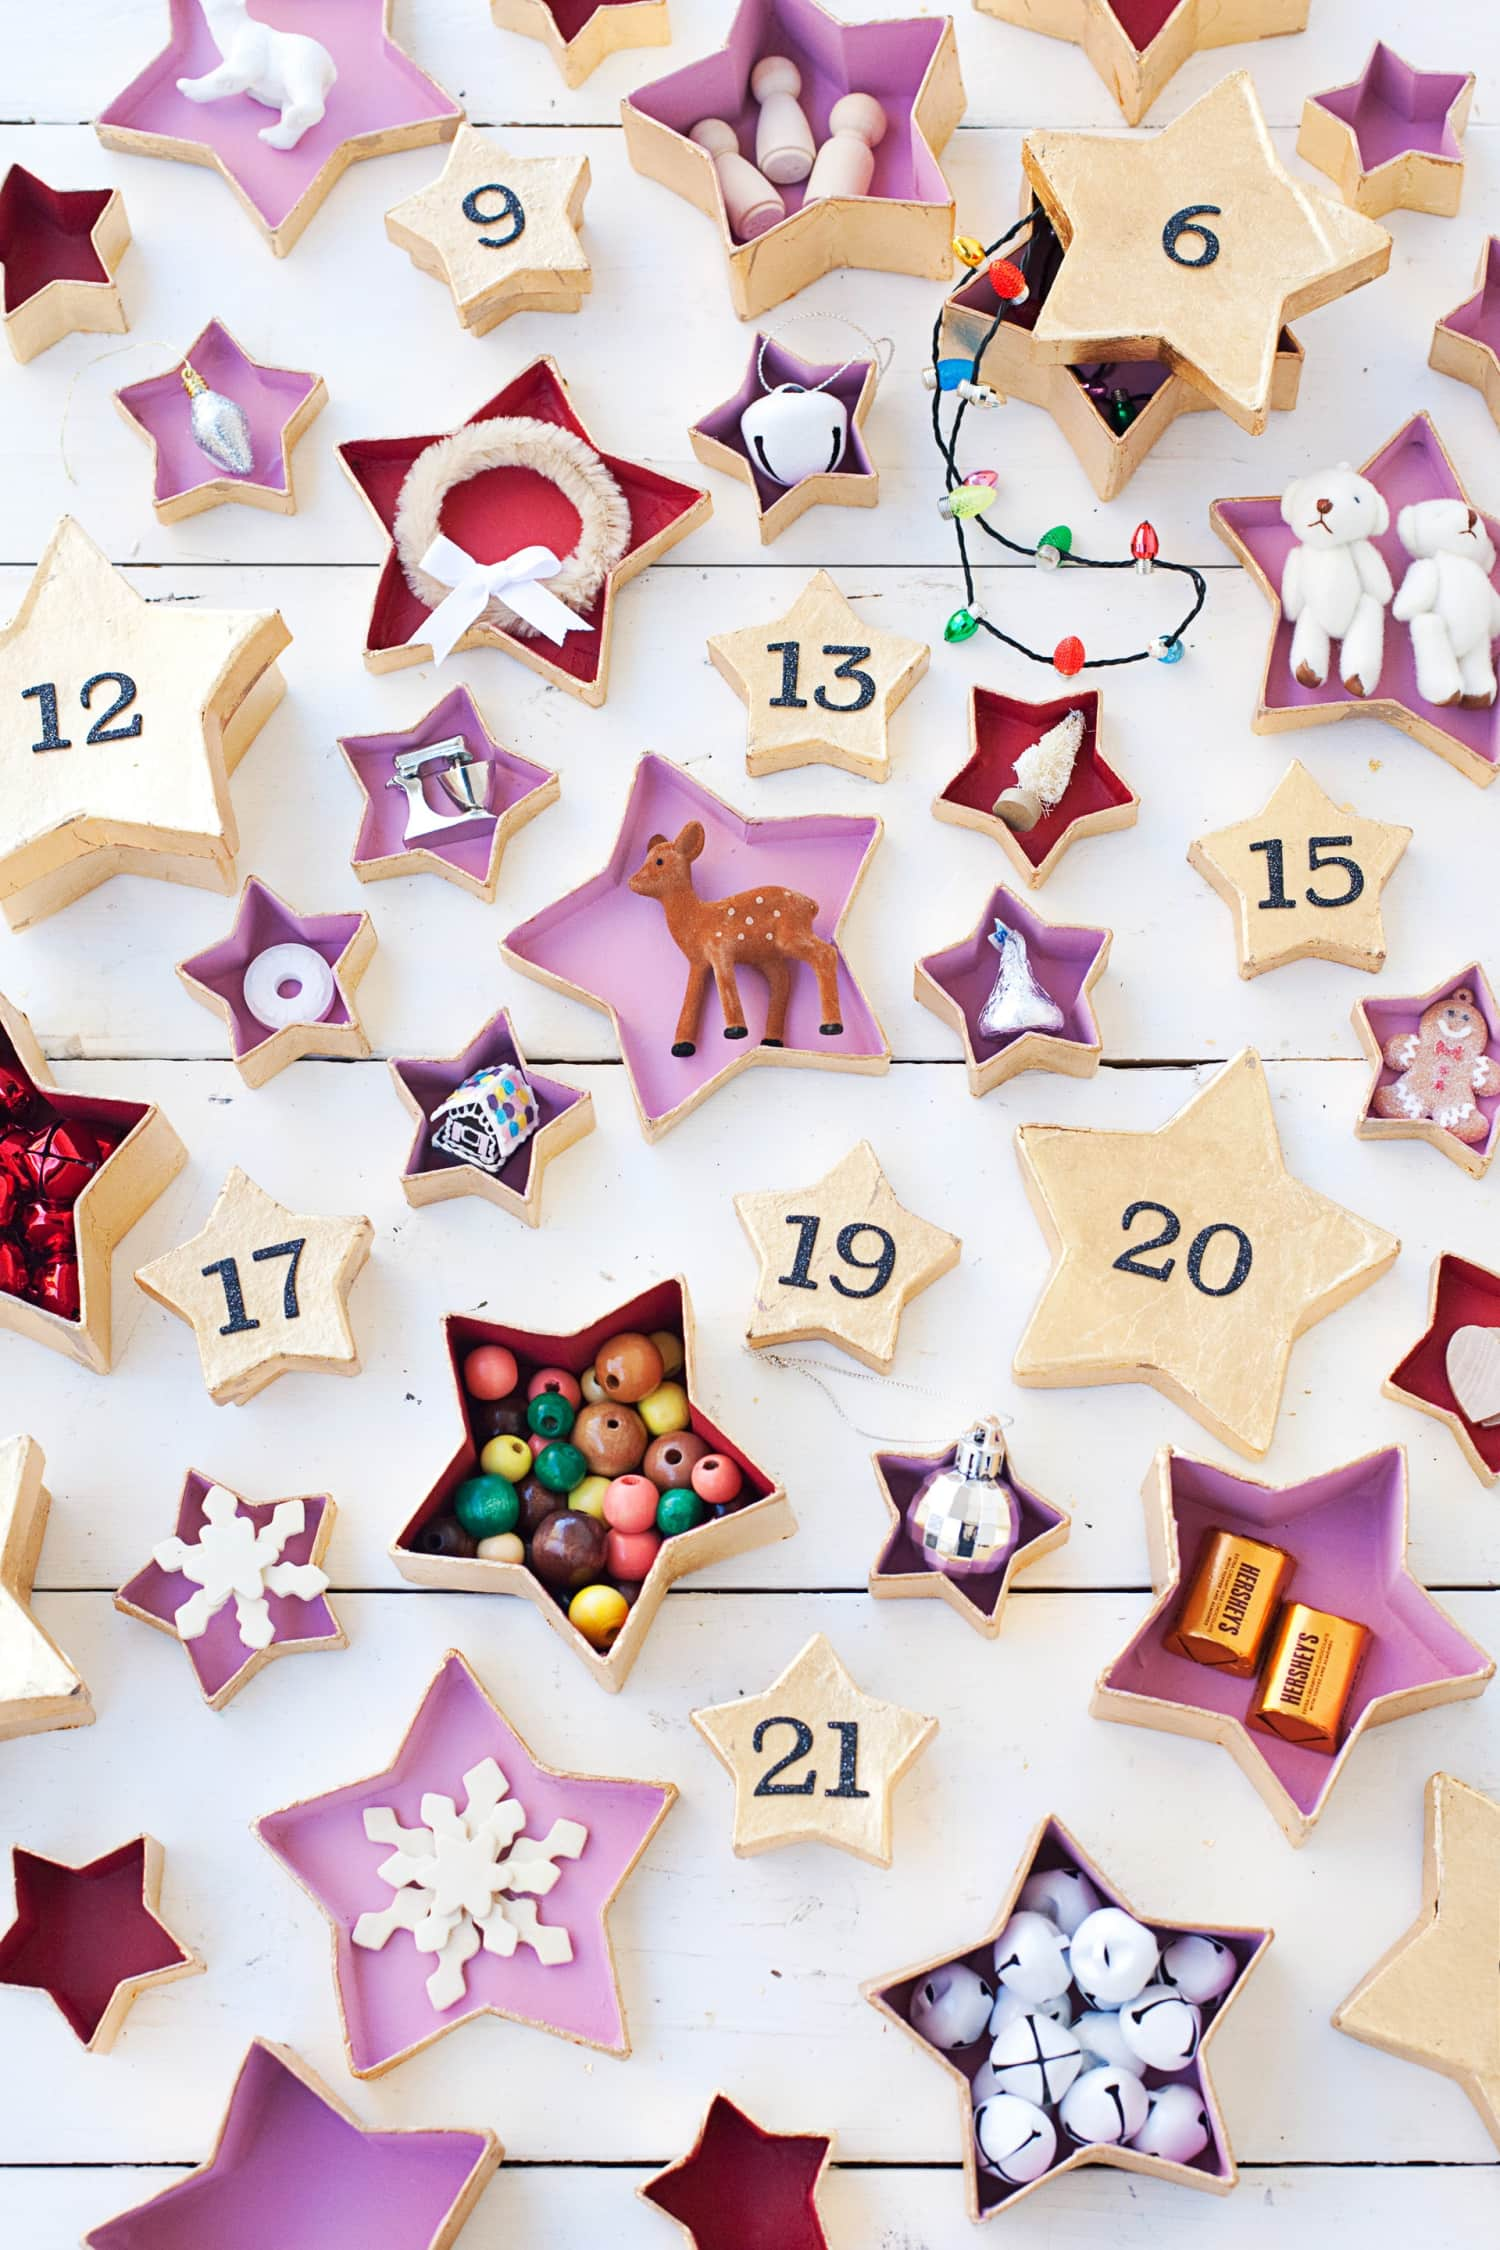 35 DIY Advent Calendars to Make Now So You're Ready for December